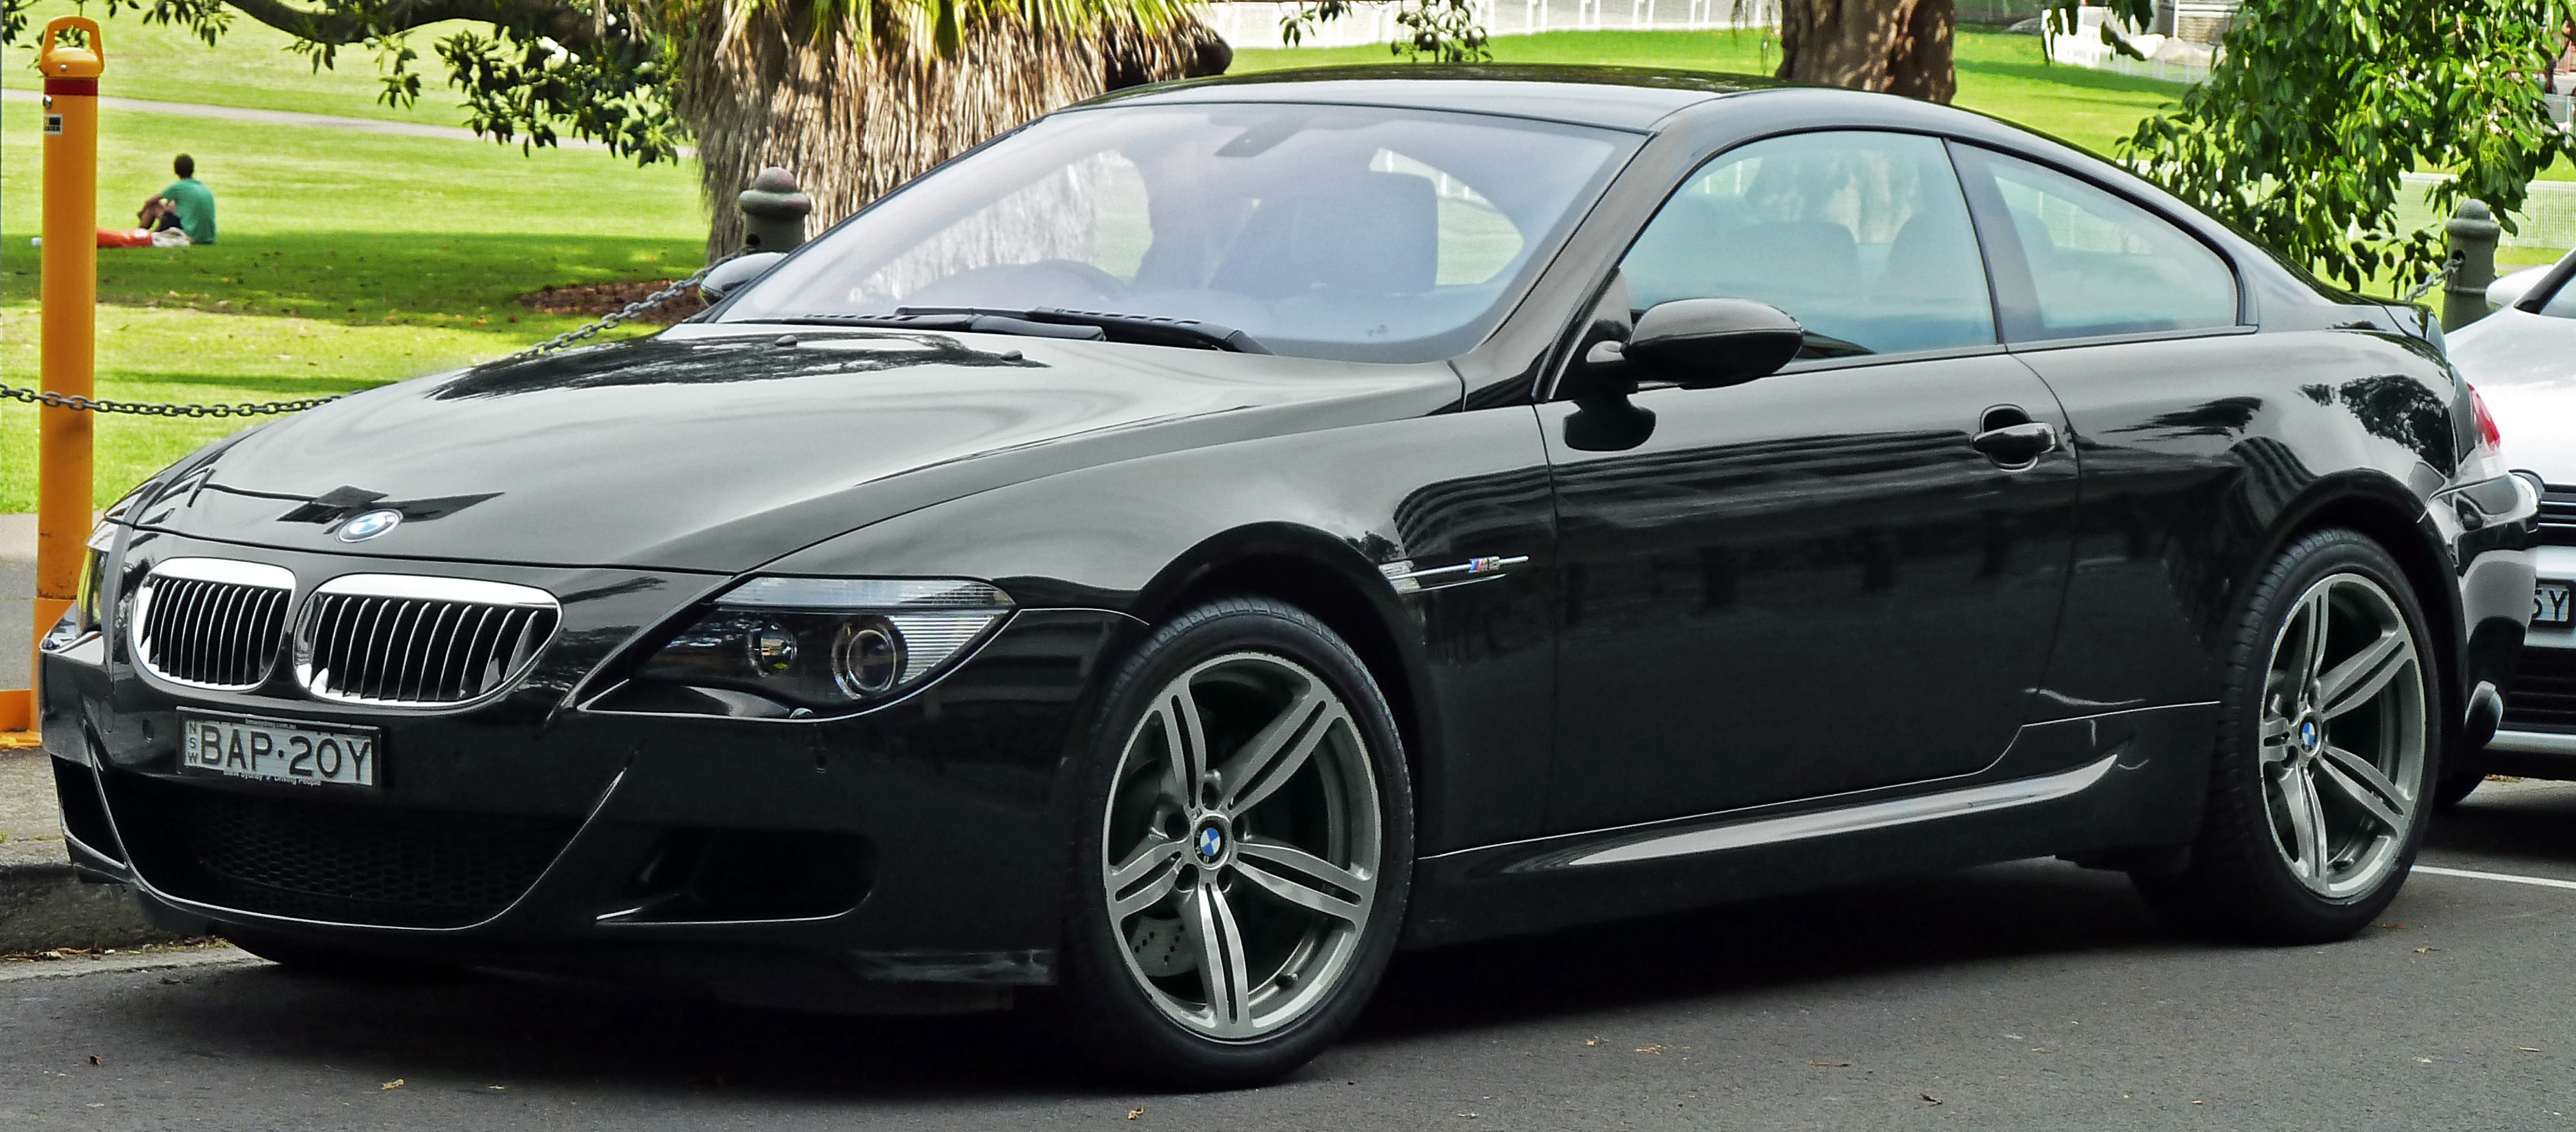 File:2005-2010 BMW M6 (E63) coupe (2011-11-08).jpg - Wikimedia Commons